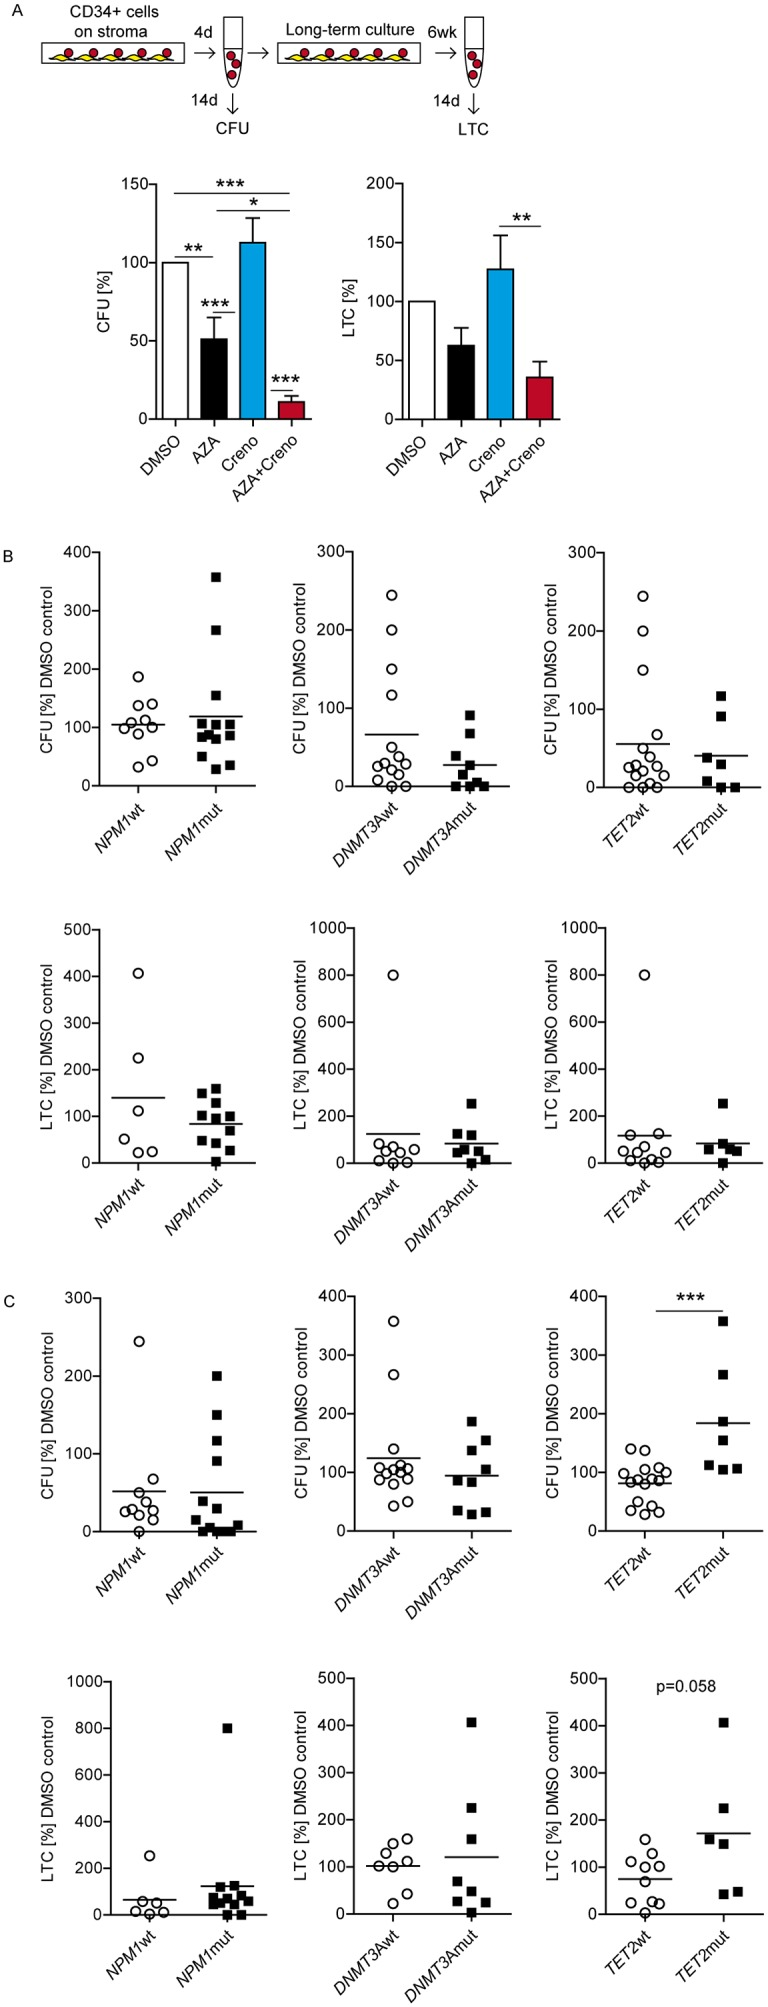 Sensitivity of primary FLT3 -ITD LIC to crenolanib is dependent on concurrent epigenetic gene mutations Experimental design: enriched CD34 + FLT3 -ITD BM cells were cultured on EL08-1D2 stroma and treated on day 1 with DMSO, 10 μM AZA, 100 nM creno or the combination thereof. Cells were harvested after 4 days. Progenitor activity was assessed by short-term colony-forming unit assay (CFU) in methylcellulose. Long-term LIC capacity (long-term culture-derived colony-forming cells, LTC) was assessed after 6 weeks on irradiated (30 Gy) EL08-1D2 cells followed by plating in methylcellulose. Colonies were scored after 14 days using standard criteria. Results are shown as mean CFU (n = 23 ± SEM) and LTC frequencies (n = 17 ± SEM) in relation to DMSO controls (A) . Response to AZA alone regarding co-mutations in NPM1 (CFU n = 23; LTC n =18), DNMT3A (CFU n = 23; LTC n =17), TET2 (CFU n = 23, upper panels; LTC n =17, lower panels) (B) . Response to creno alone regarding co-mutations in NPM1 (CFU n = 23; LTC n =18), DNMT3A (CFU n = 23; LTC n =16), TET2 (CFU n = 23; LTC n =16) (C) .